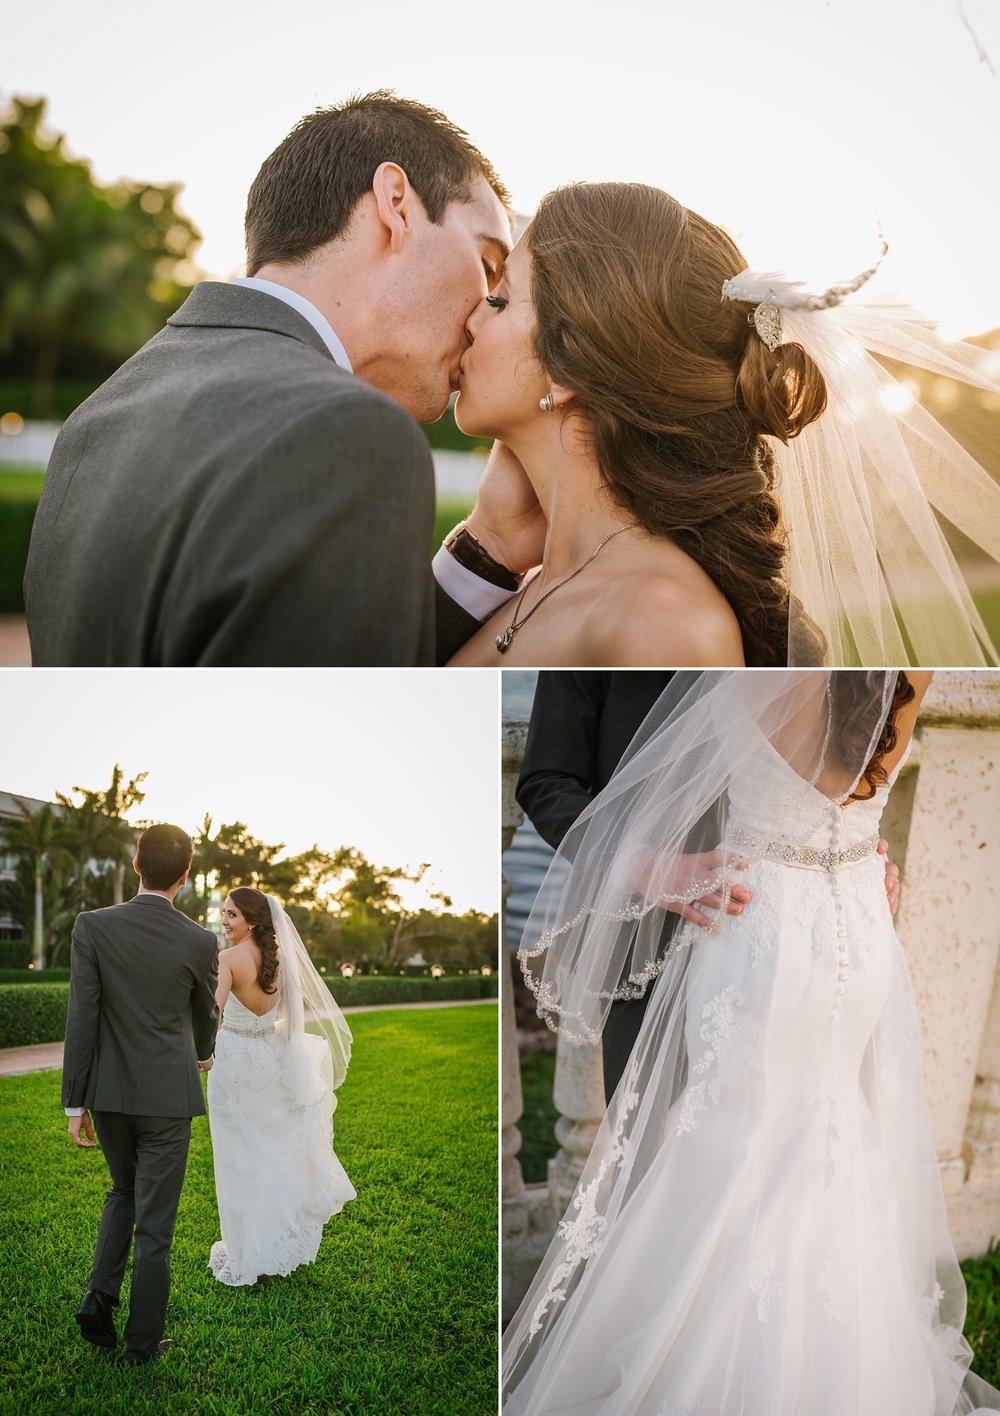 miami-wedding-photography-ashlee-hamon-elegant-vintage-antique-wedding_0021.jpg